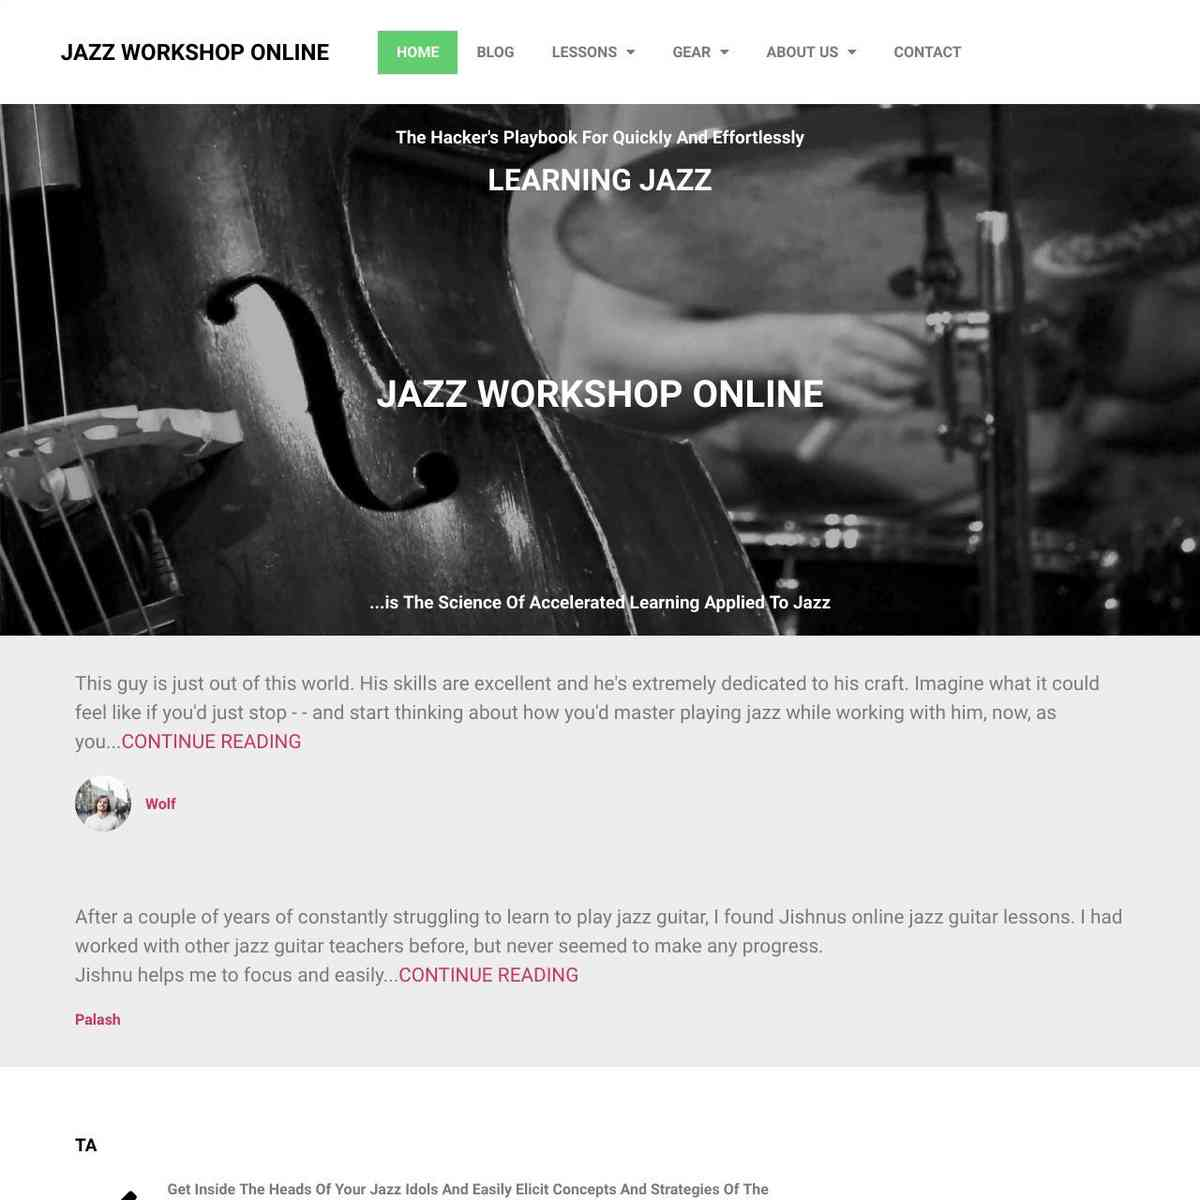 JAZZ WORKSHOP ONLINE WEBSITE